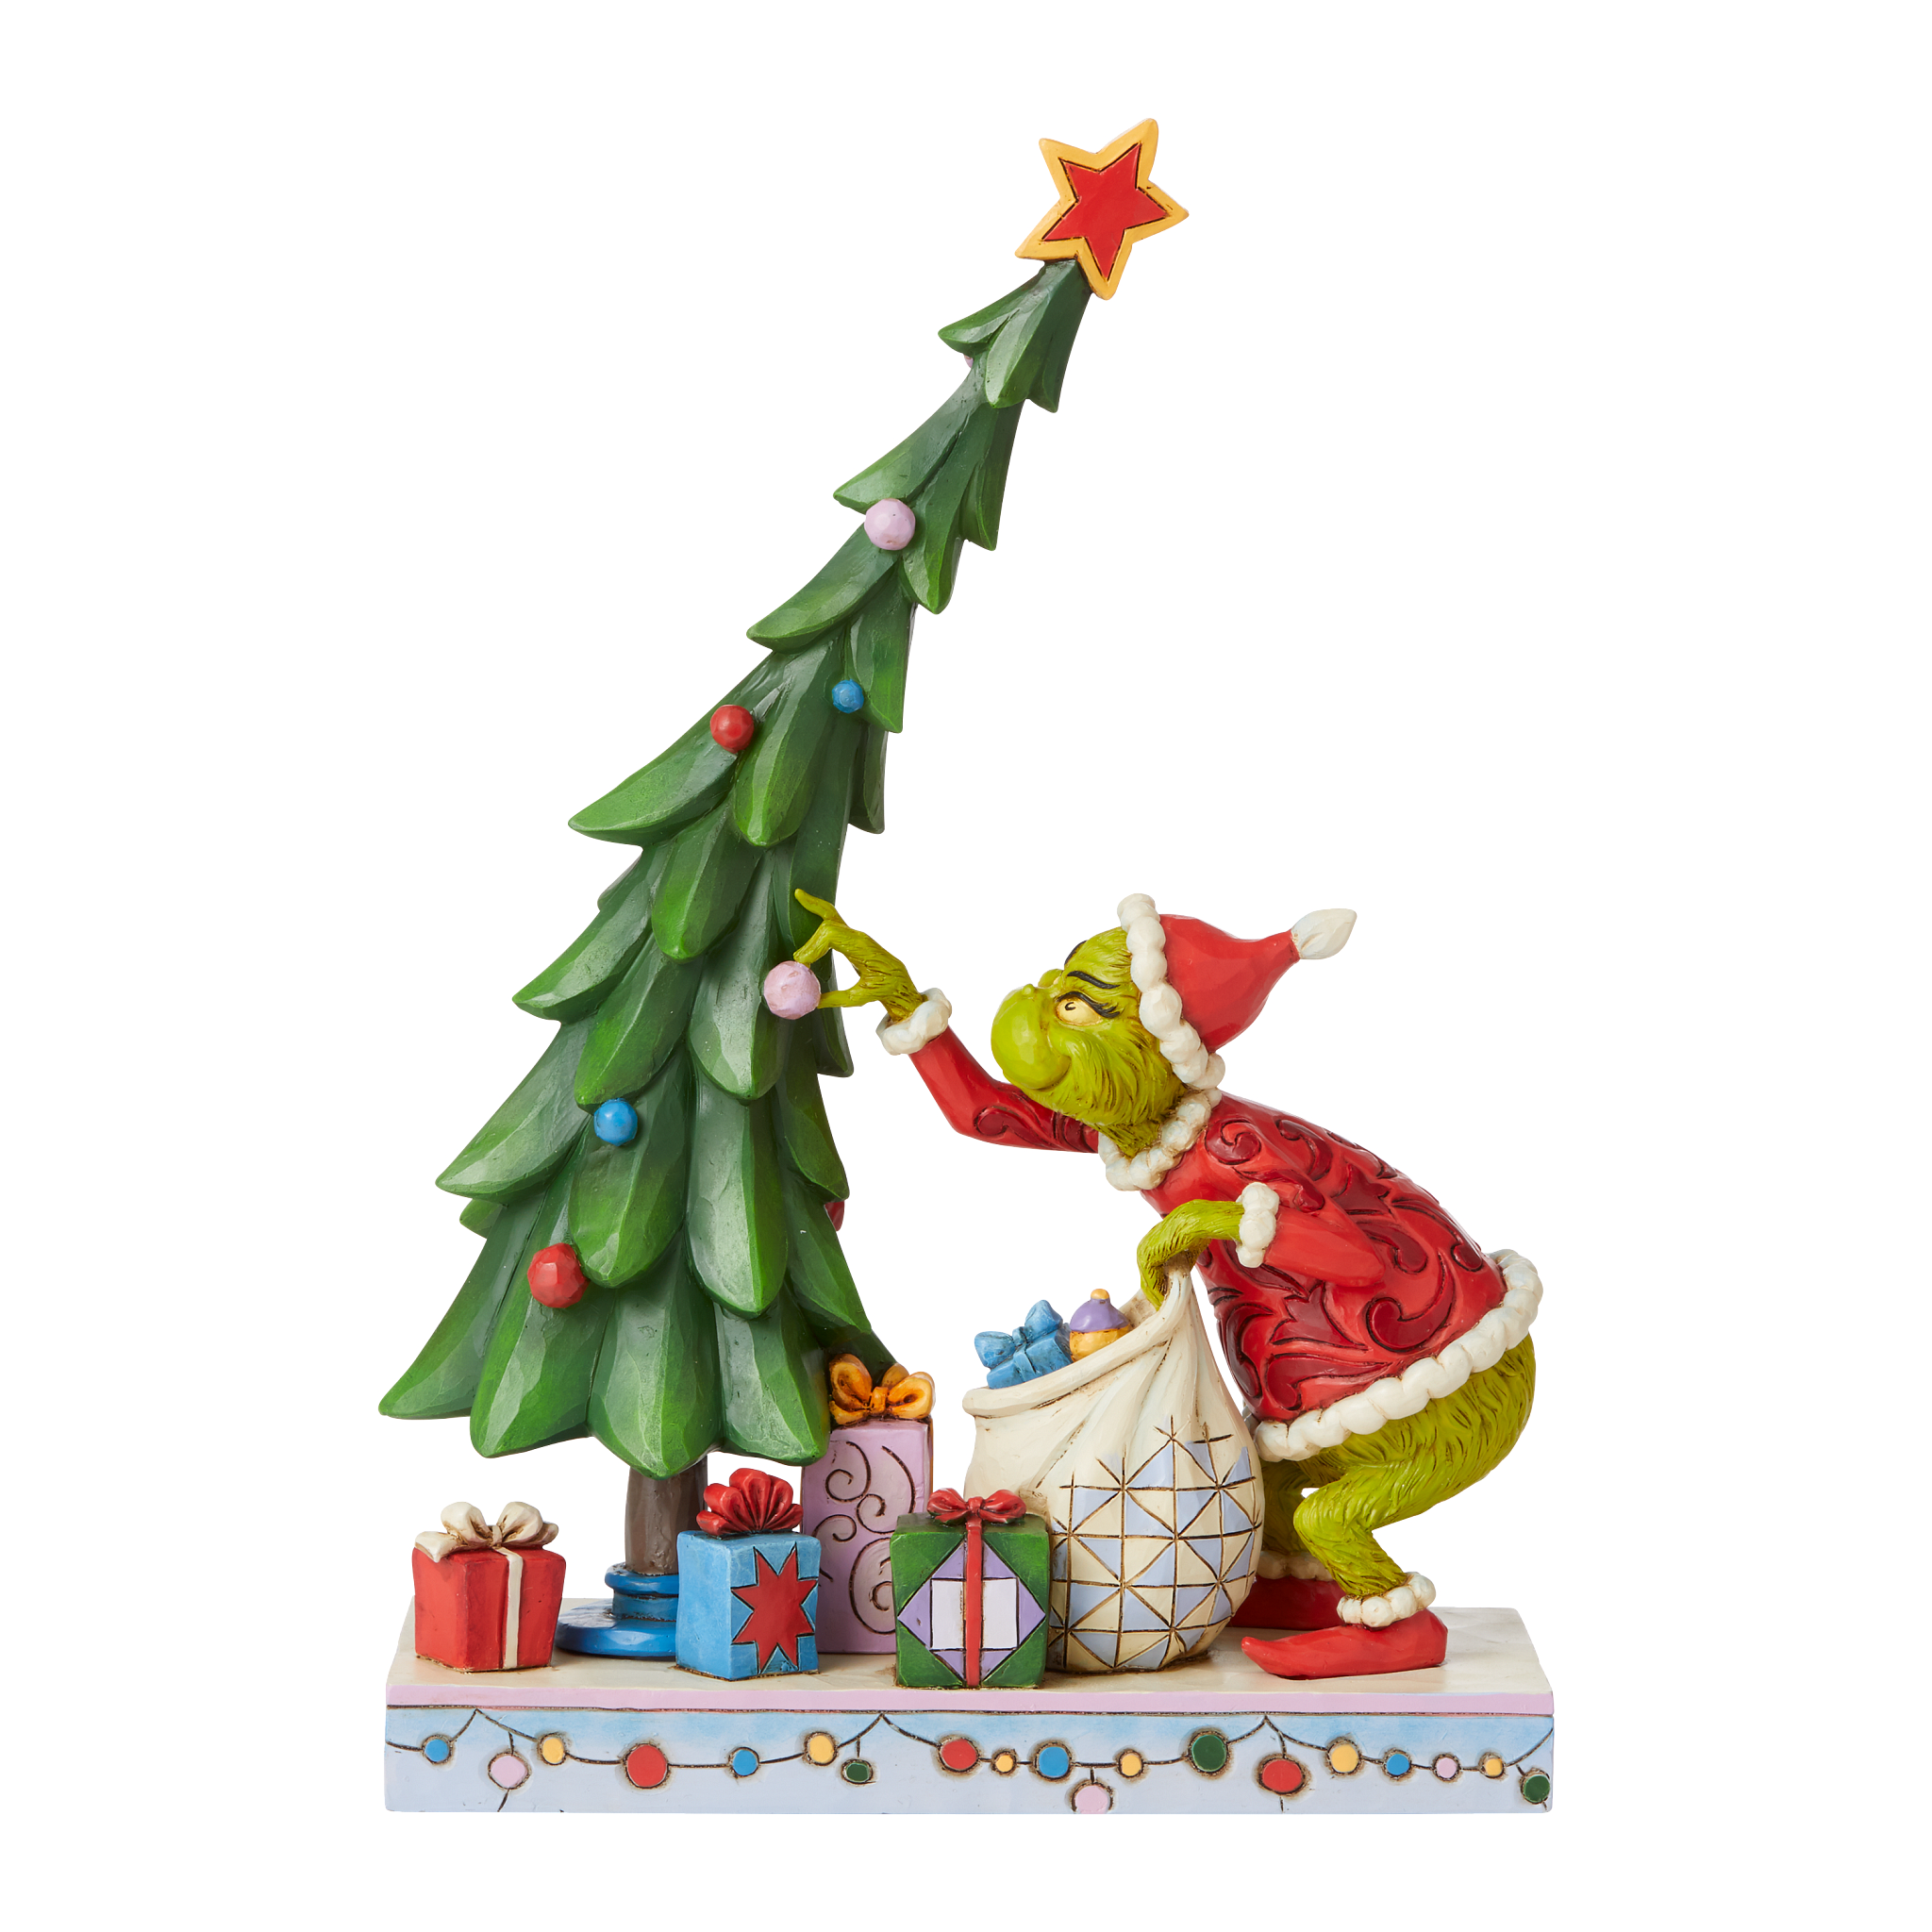 Jim Shore - Figurines 'Grinch Undecorating Tree N' 2021